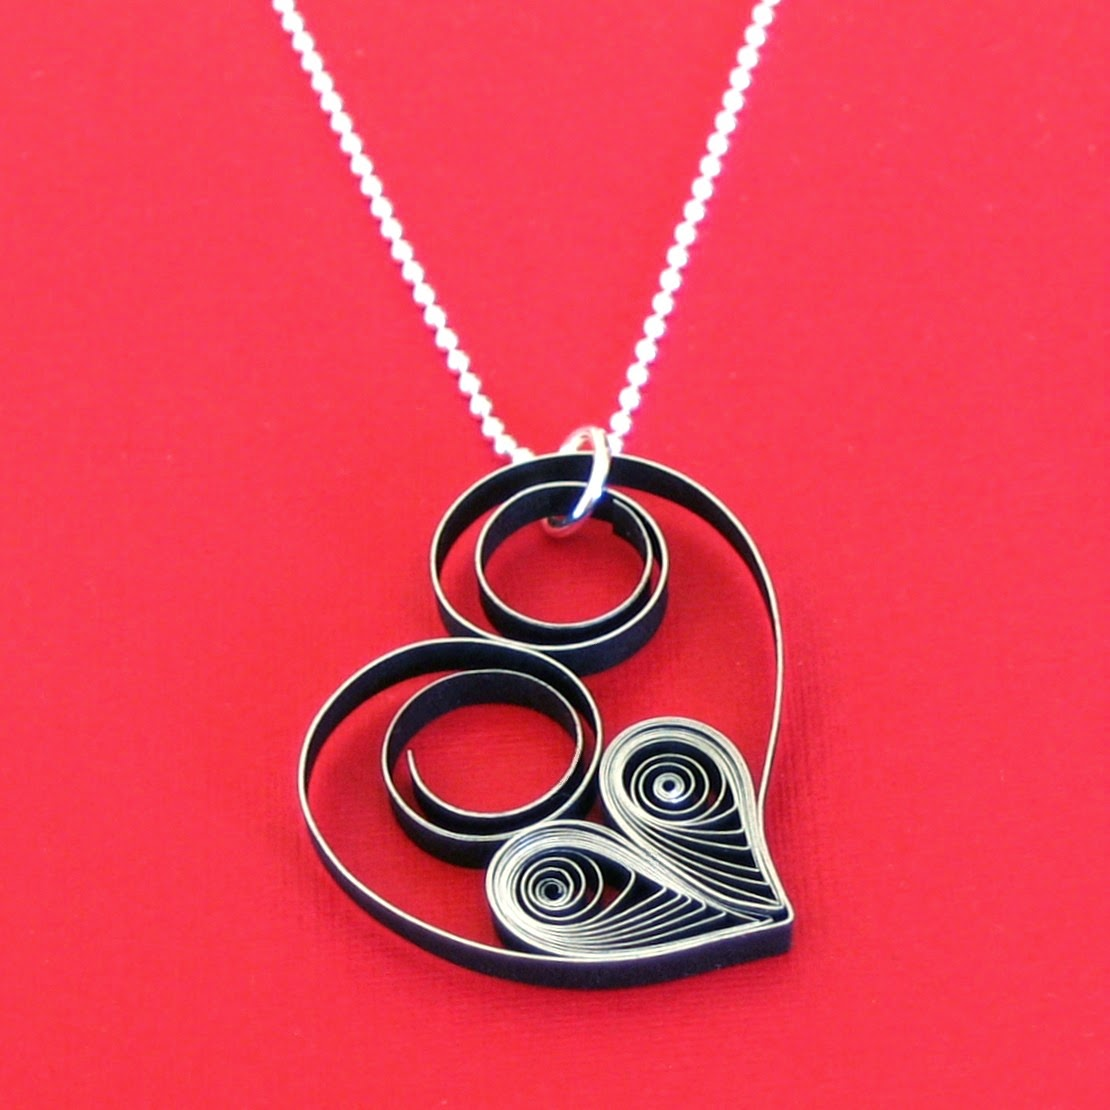 Asymmetric Heart Necklace - paper jewelry by Ann Martin